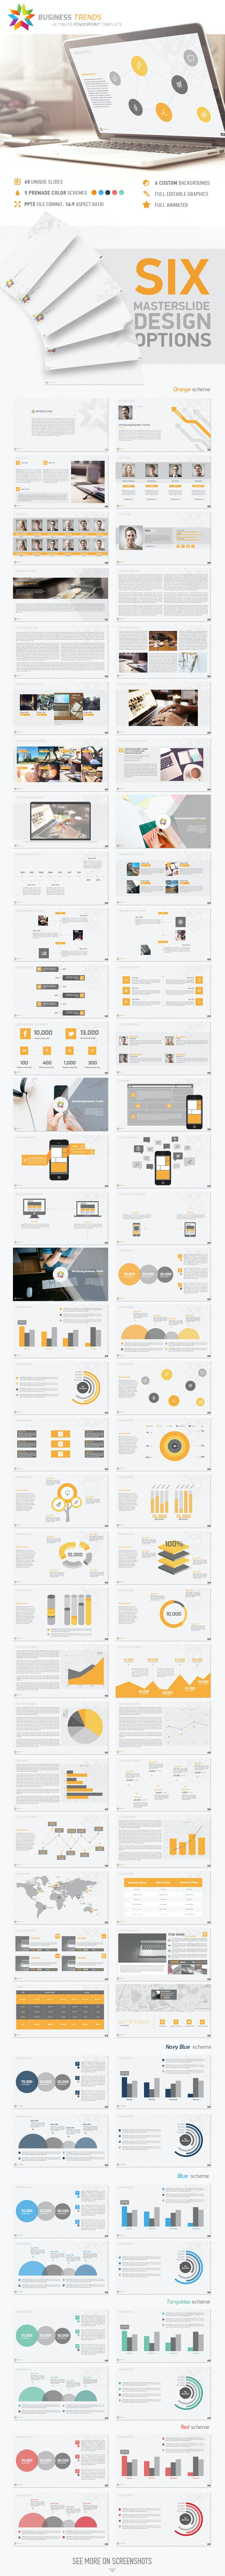 Business Trends PowerPoint Template - Business PowerPoint Templates